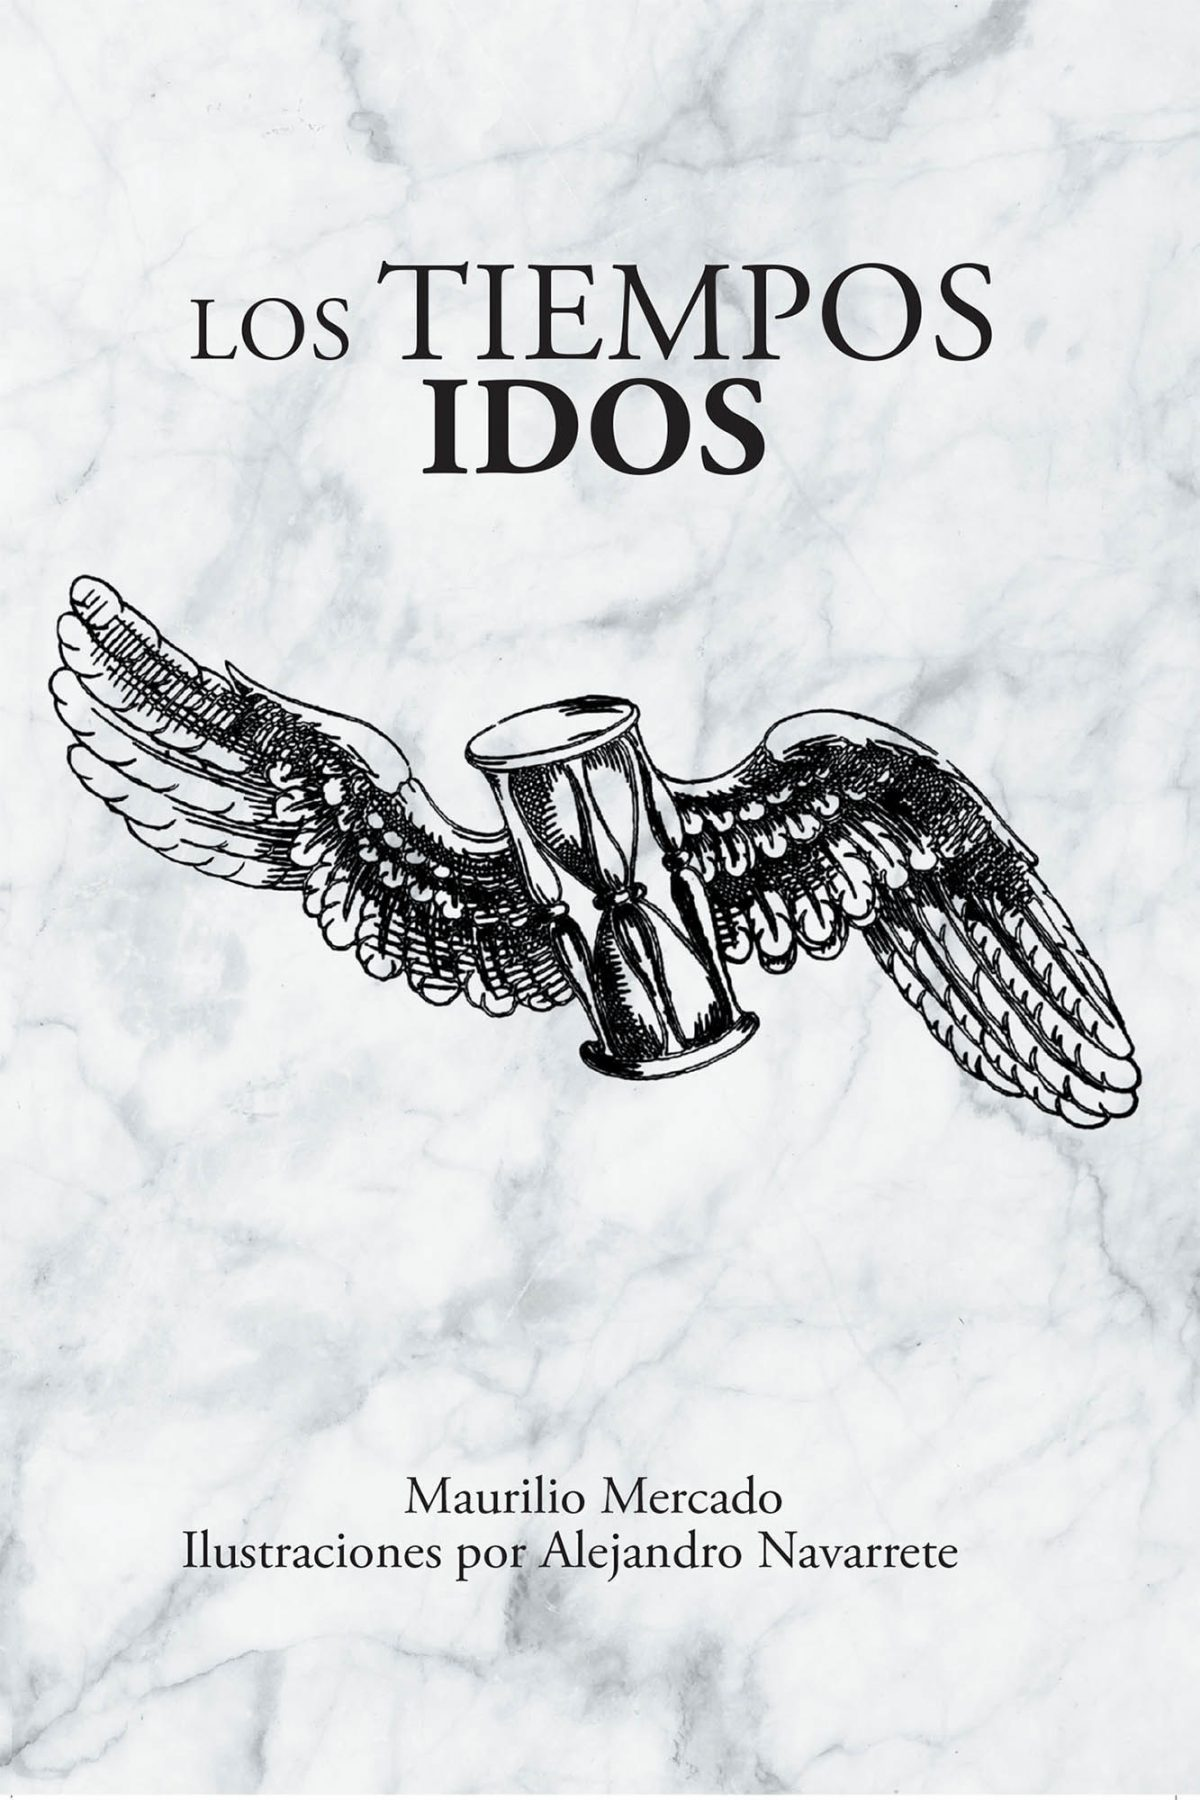 Maurilio Mercado's New Book Los Tiempos Idos, An Emotionally Driven Novel Filled With Moments That Exude With Drama And Relatable Fervor